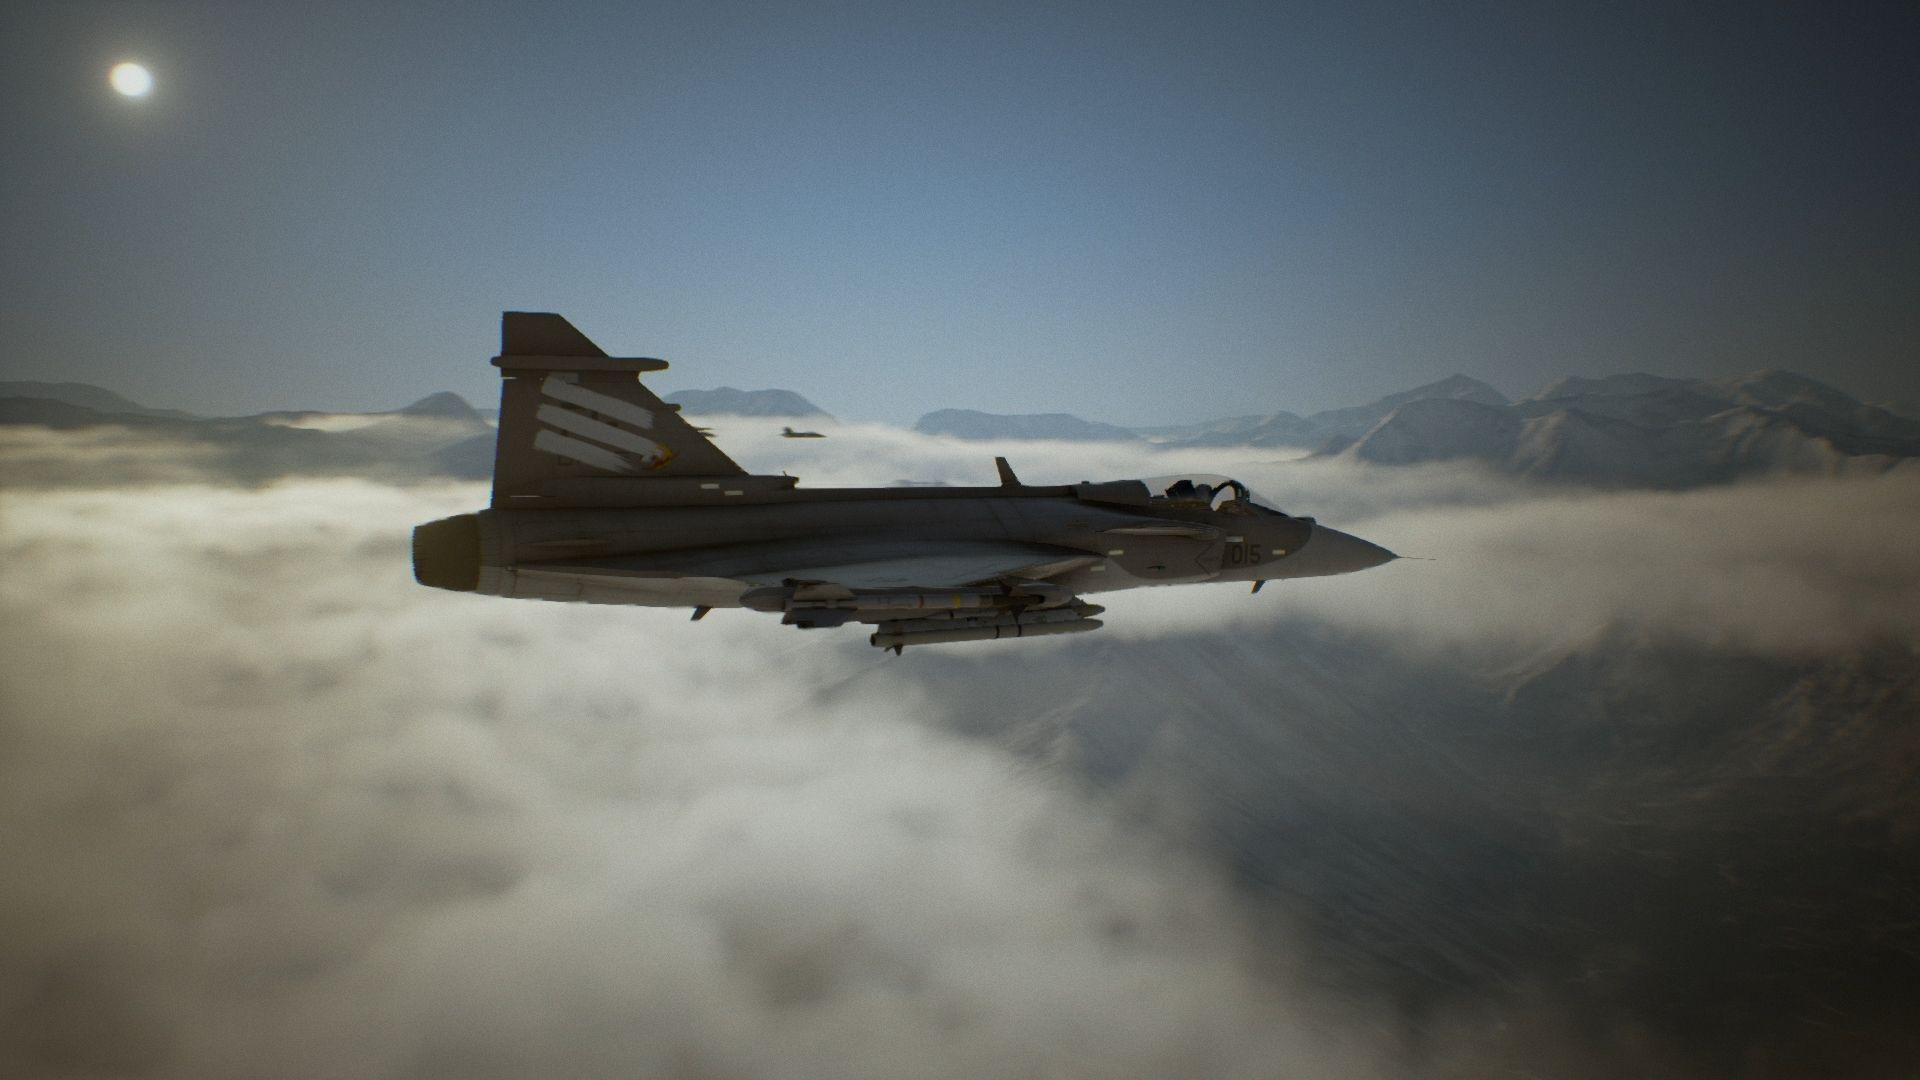 Ace Combat 7: Skies Unknown Wallpapers - Wallpaper Cave